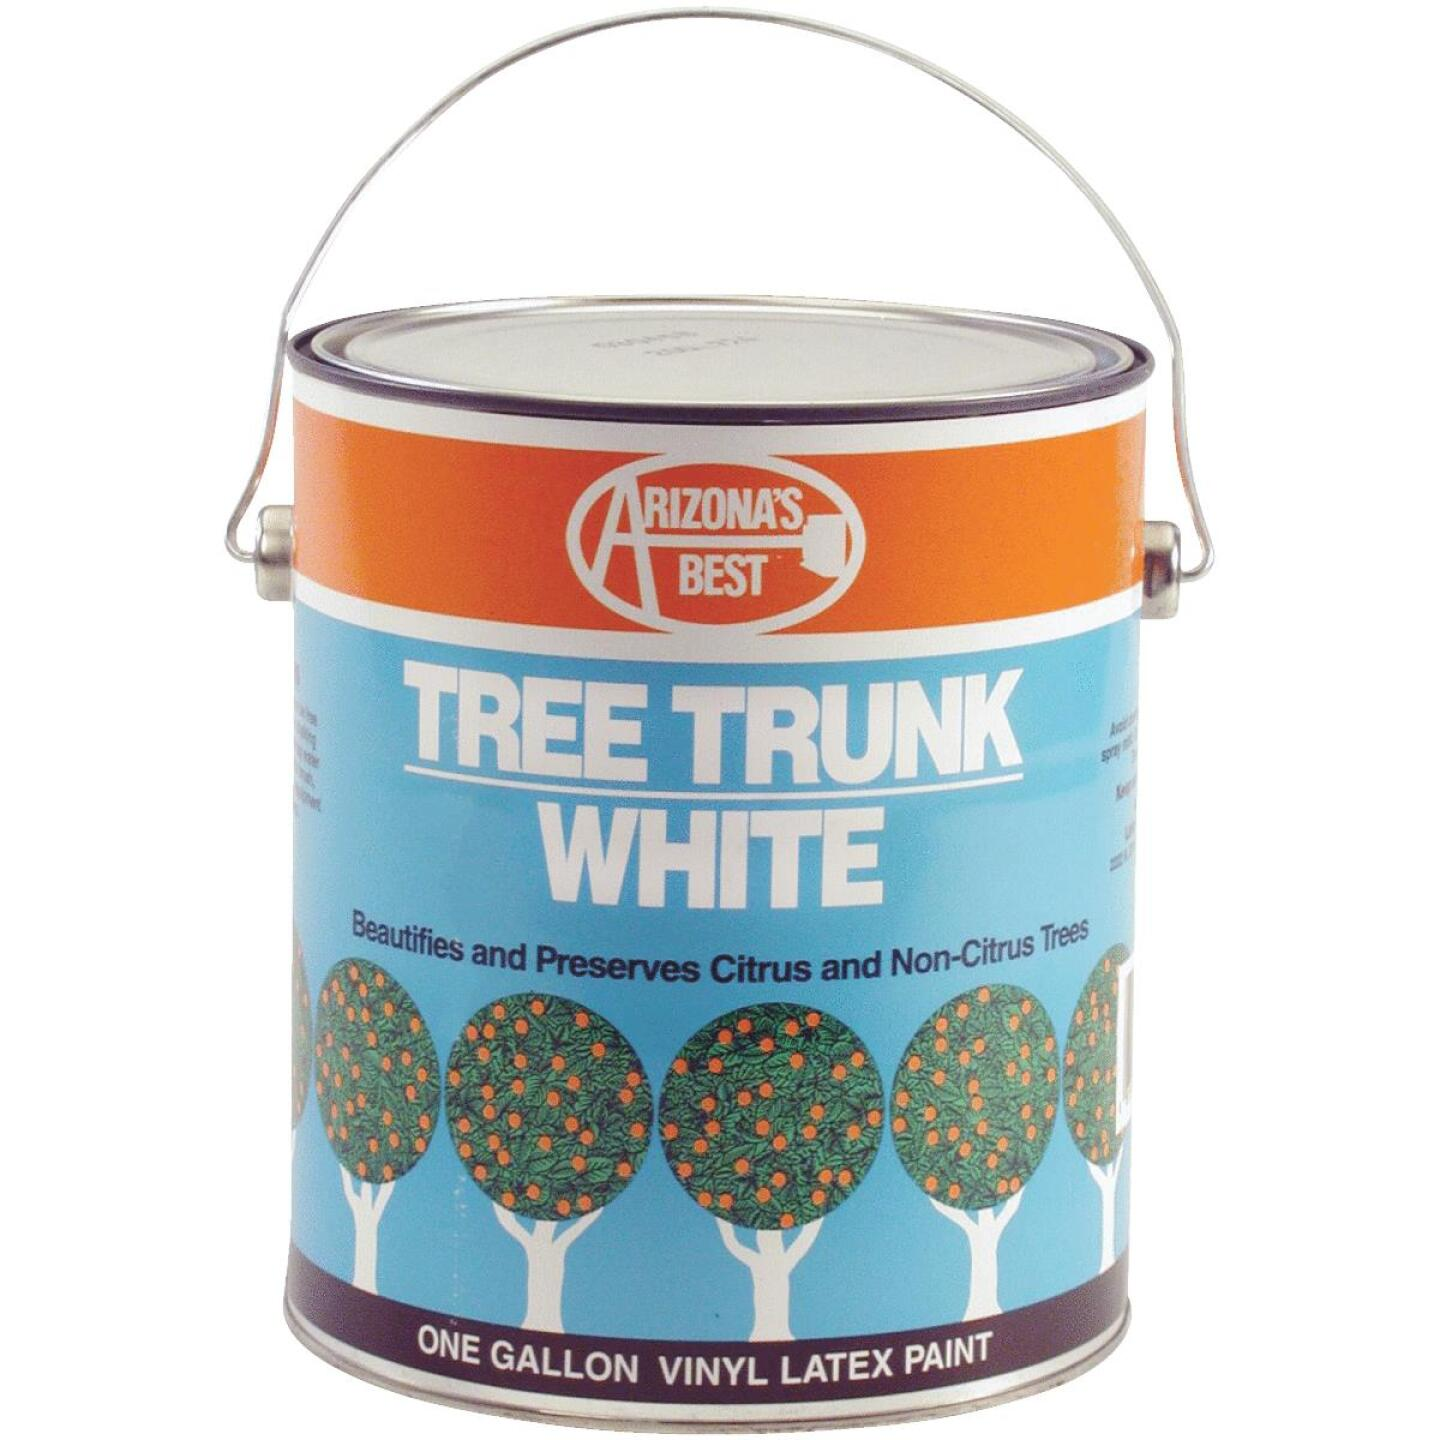 Arizona's Best White Vinyl Latex Paint 1 Gallon Tree Trunk Coating Image 1